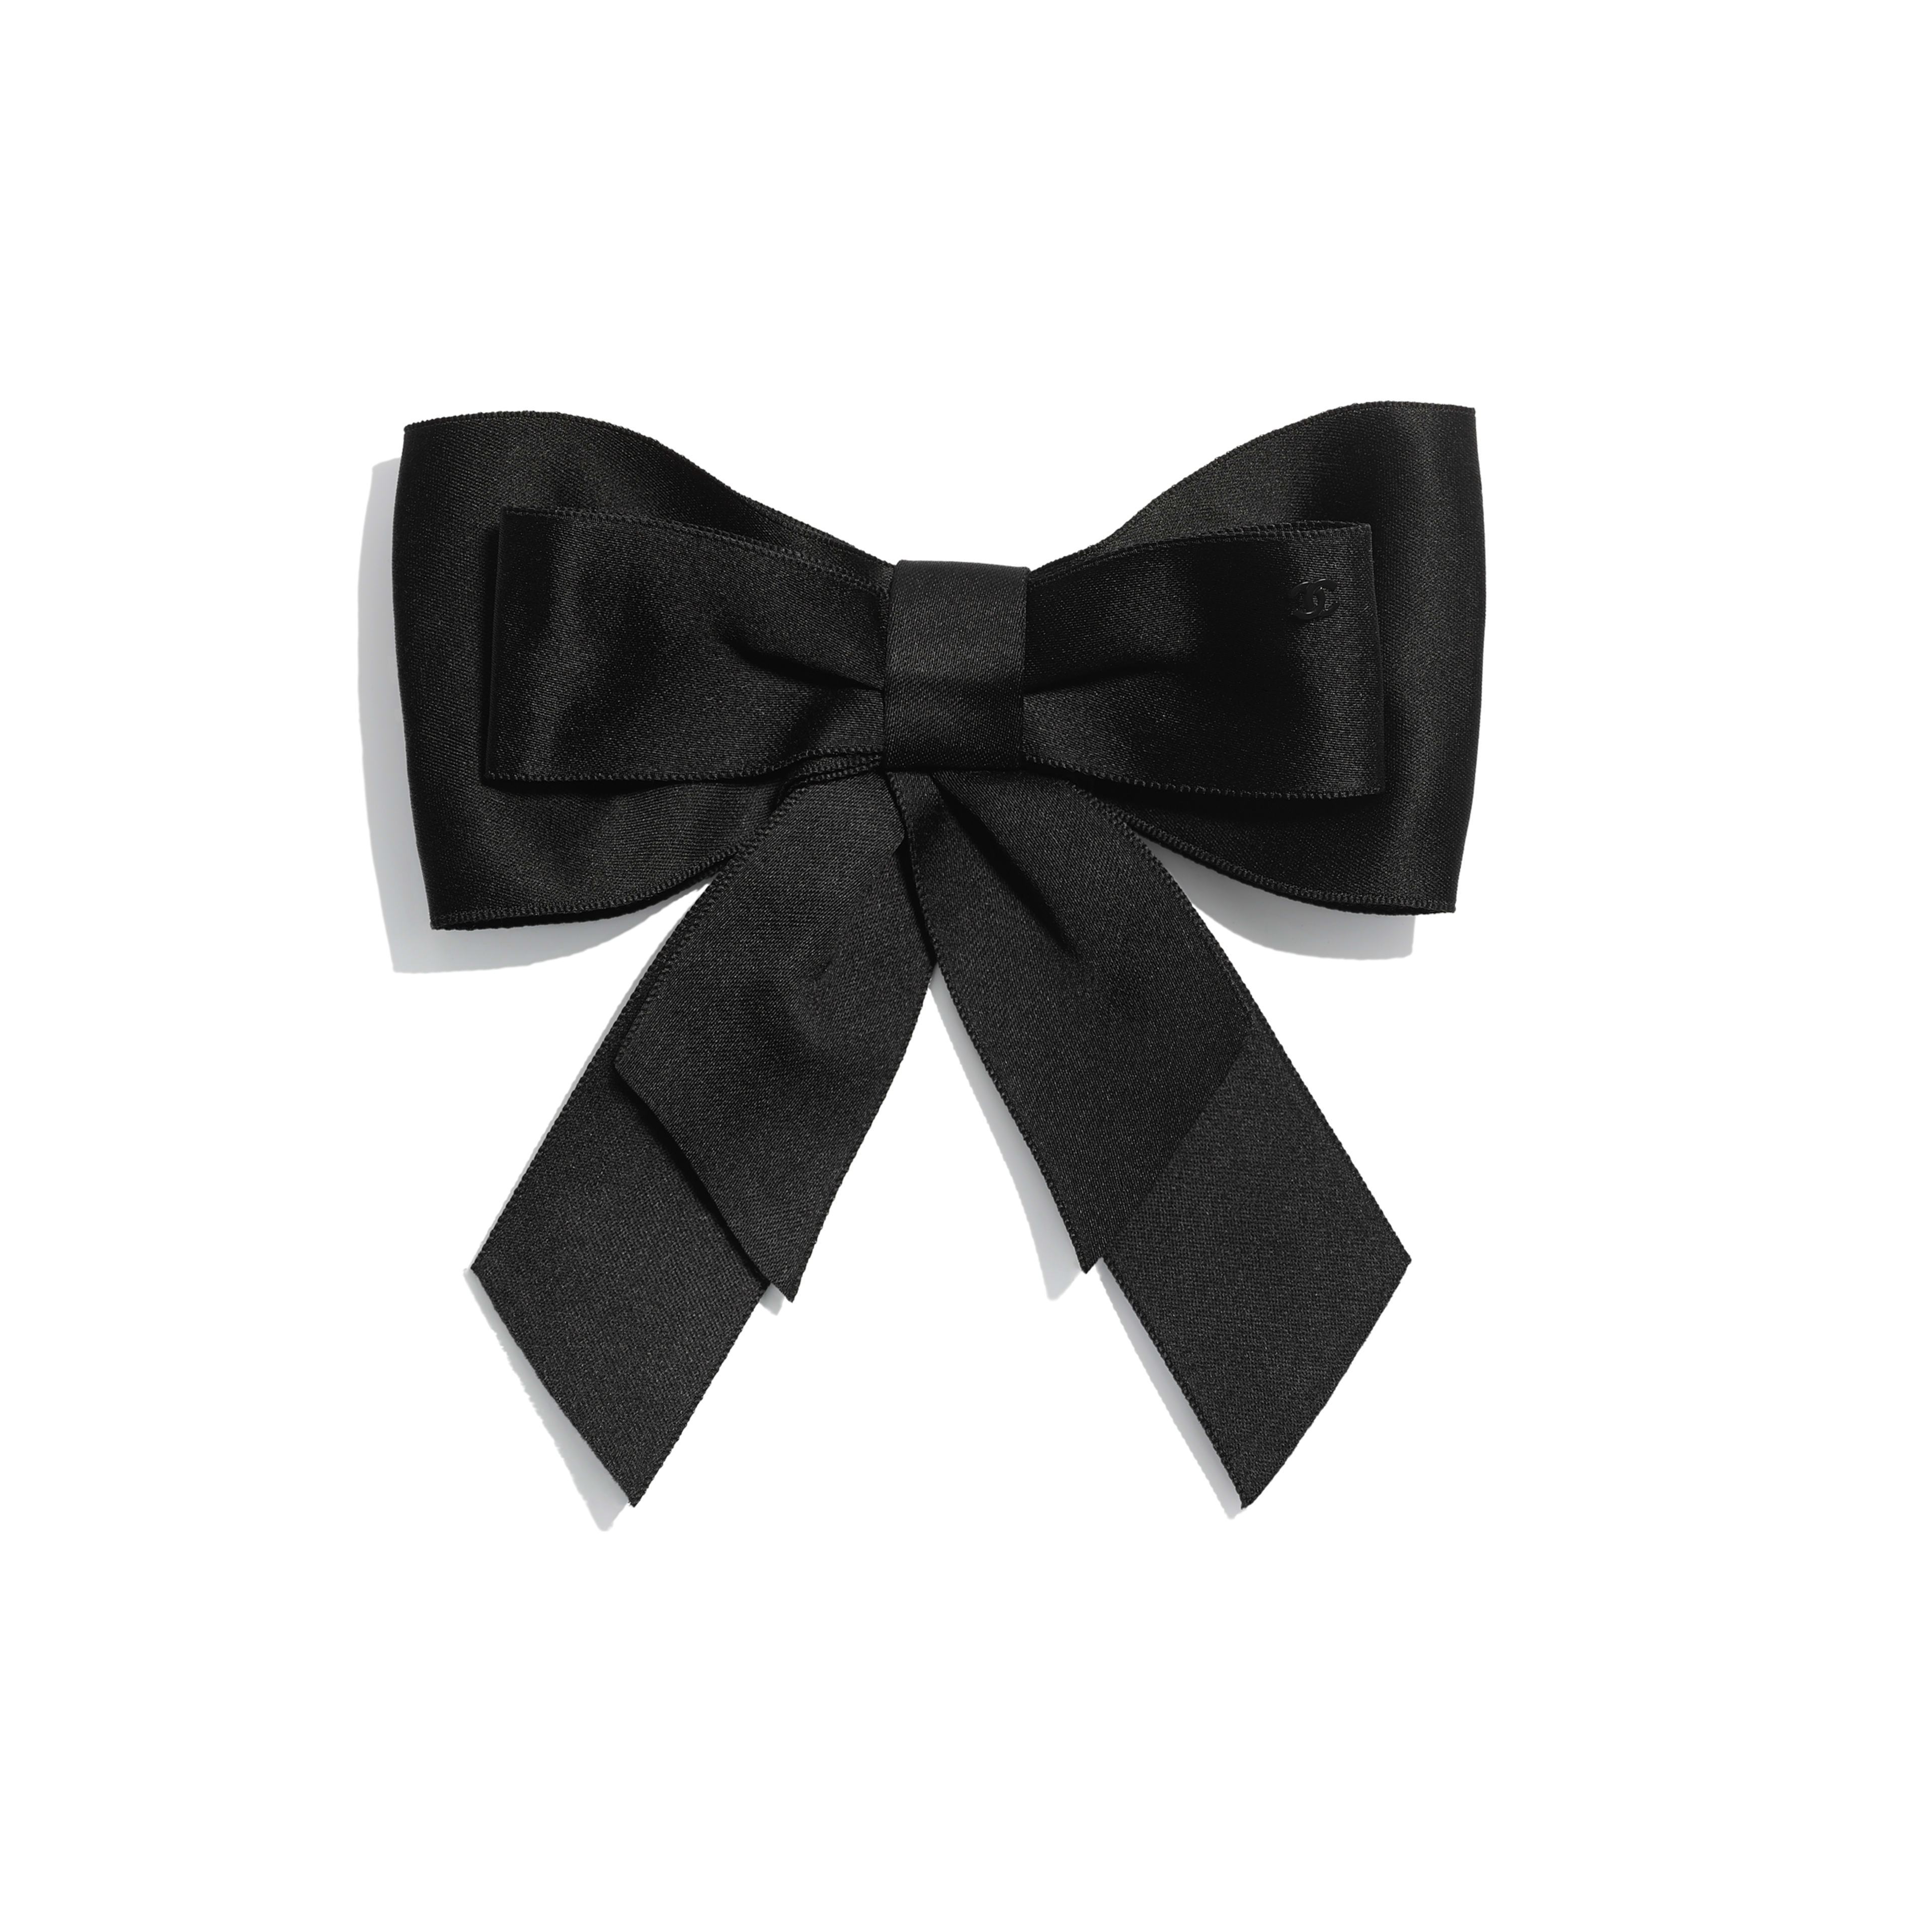 Bow - Black - Silk Satin - Default view - see full sized version